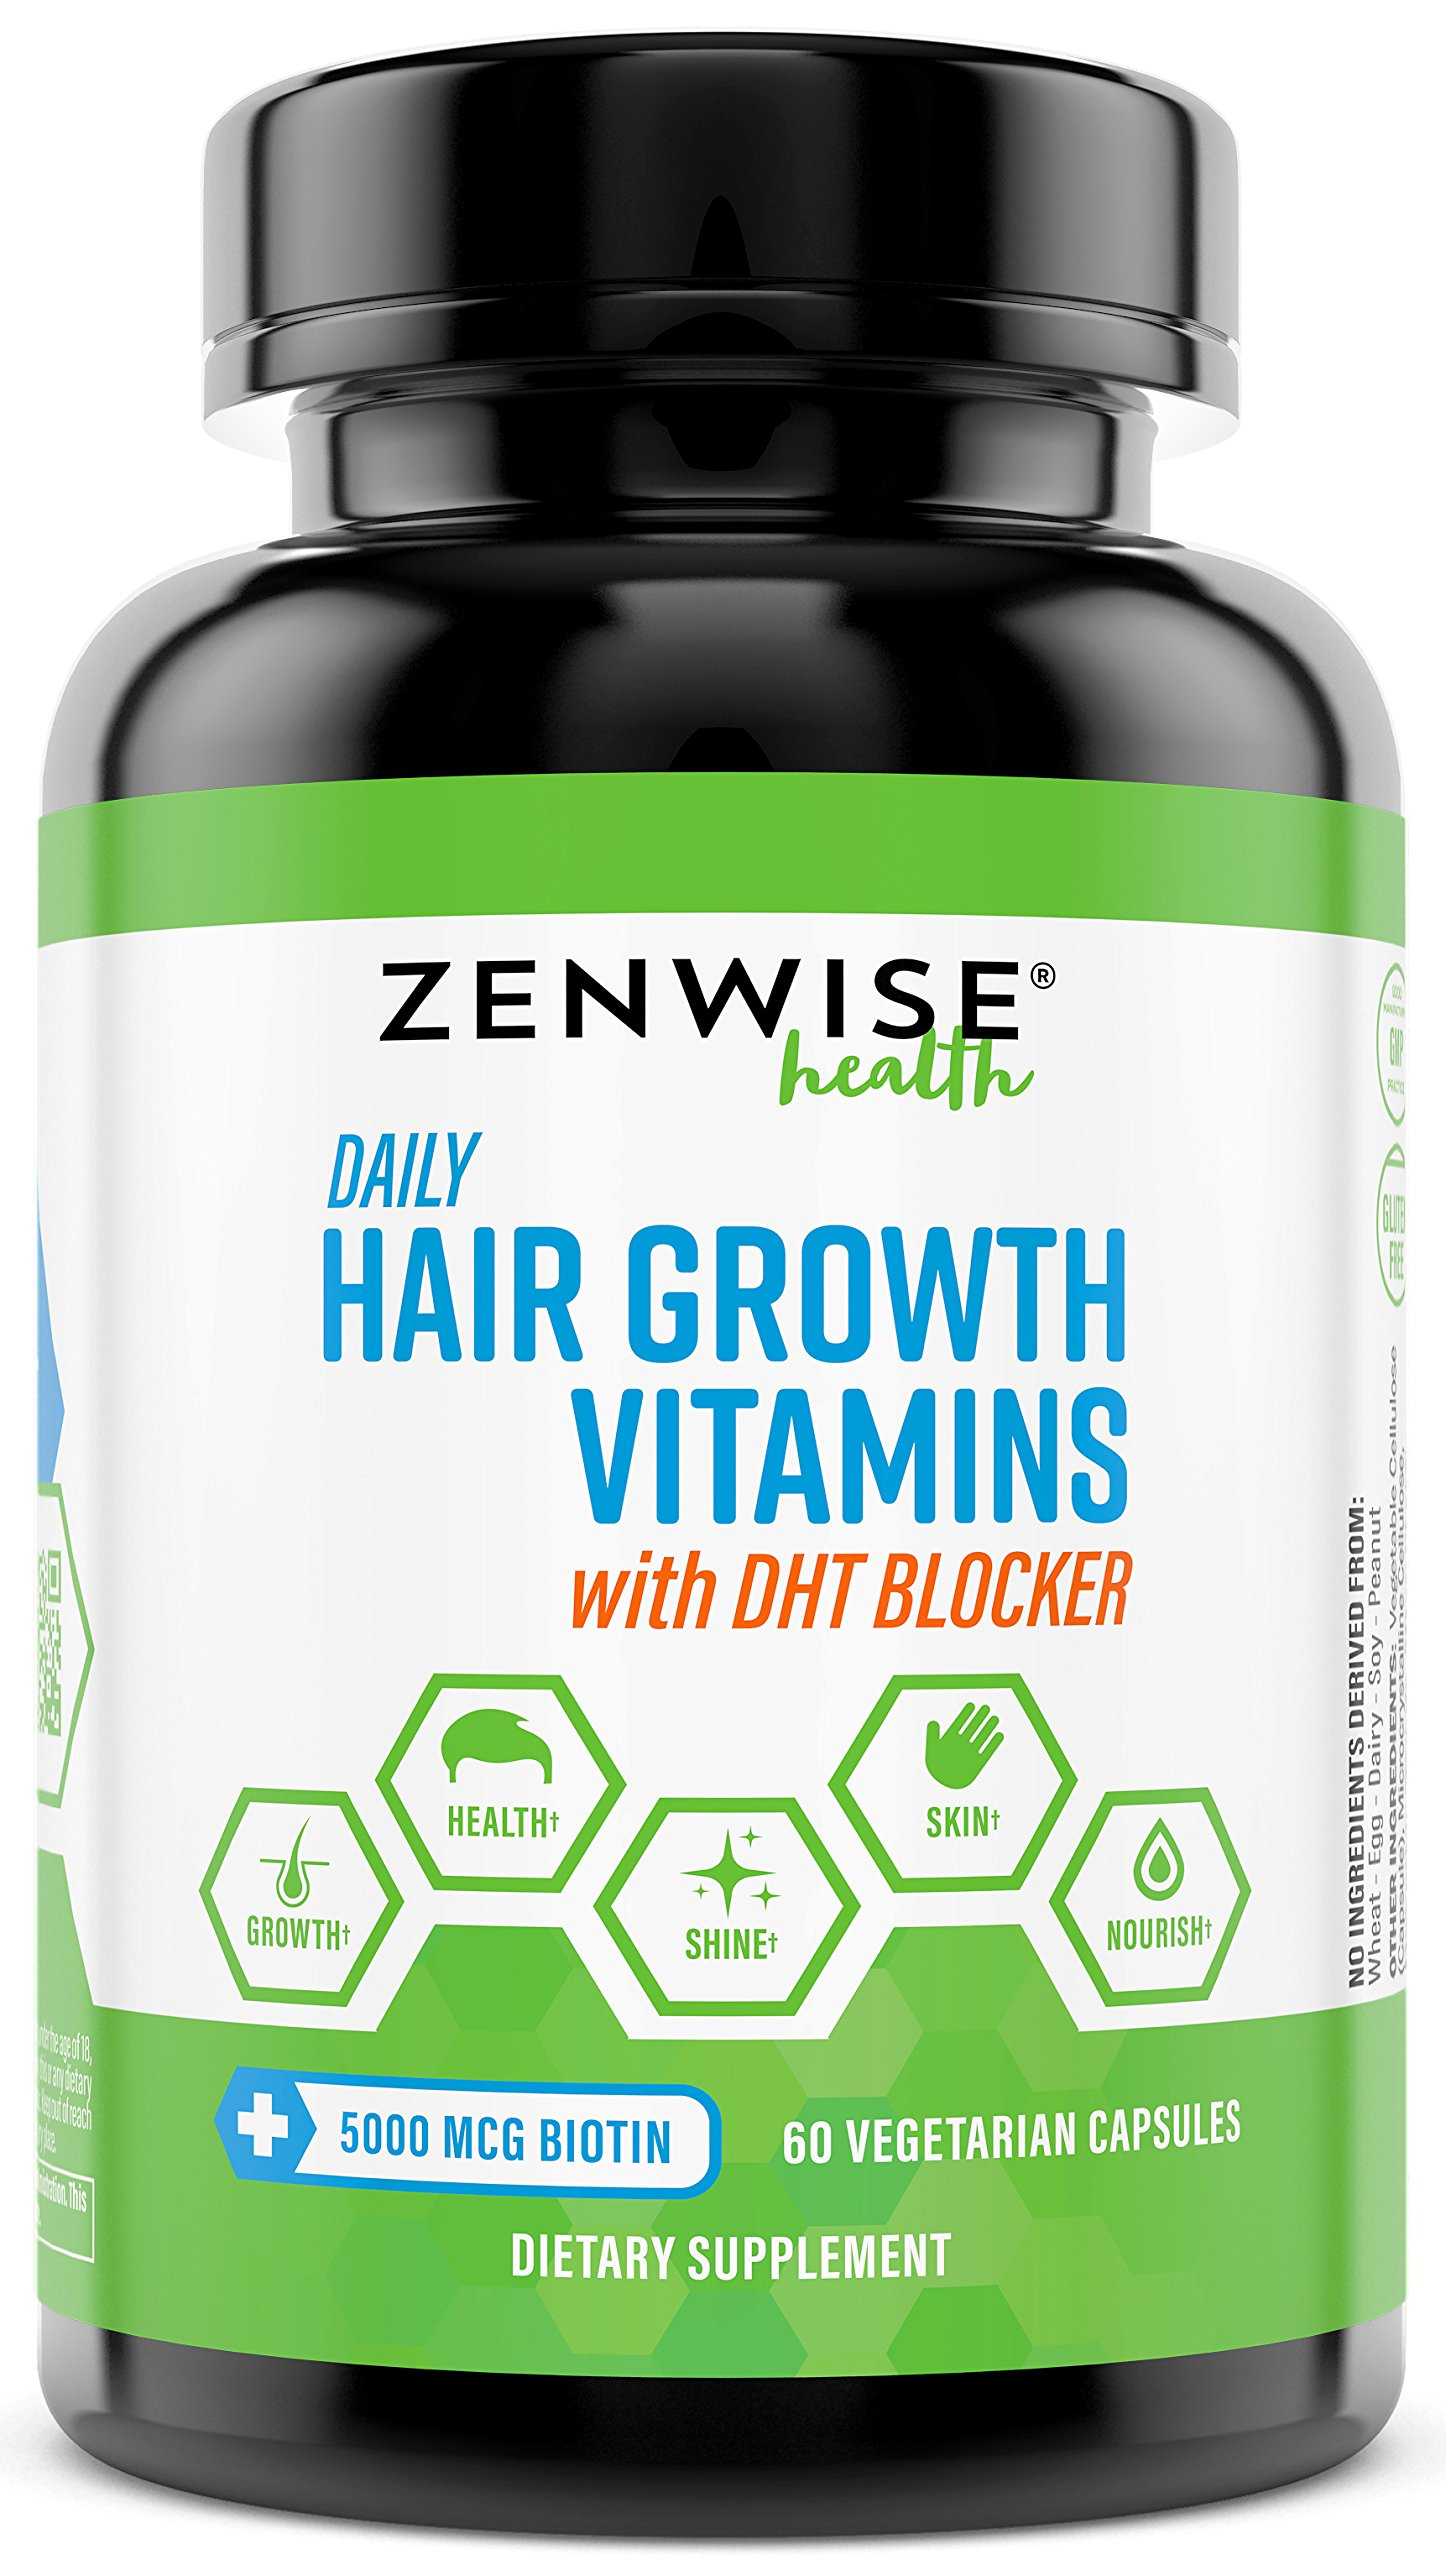 Hair Growth Vitamins Supplement - 5000 mcg Biotin & DHT Blocker Hair Loss Treatment for Men & Women - 1 Month Supply With Vitamin A & E to Stimulate Faster Regrowth + Care for Damaged Hair - 60 Pills by Zenwise Health